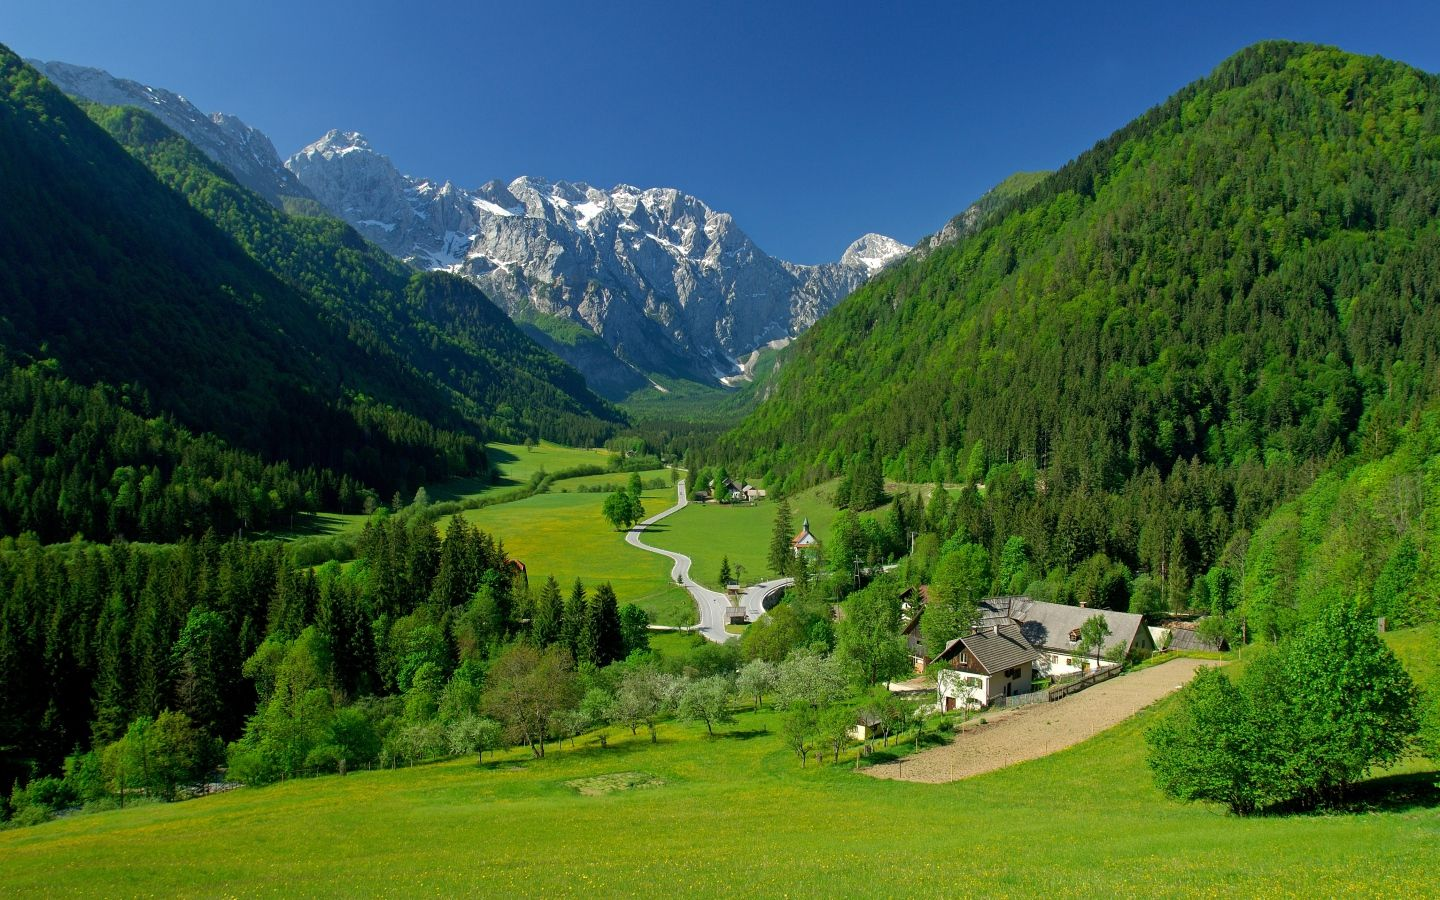 1440x900 Wallpaper Spring Alpine Valley Mountains Fields Landscape Tourist Places Slovenia Travel Beautiful Places